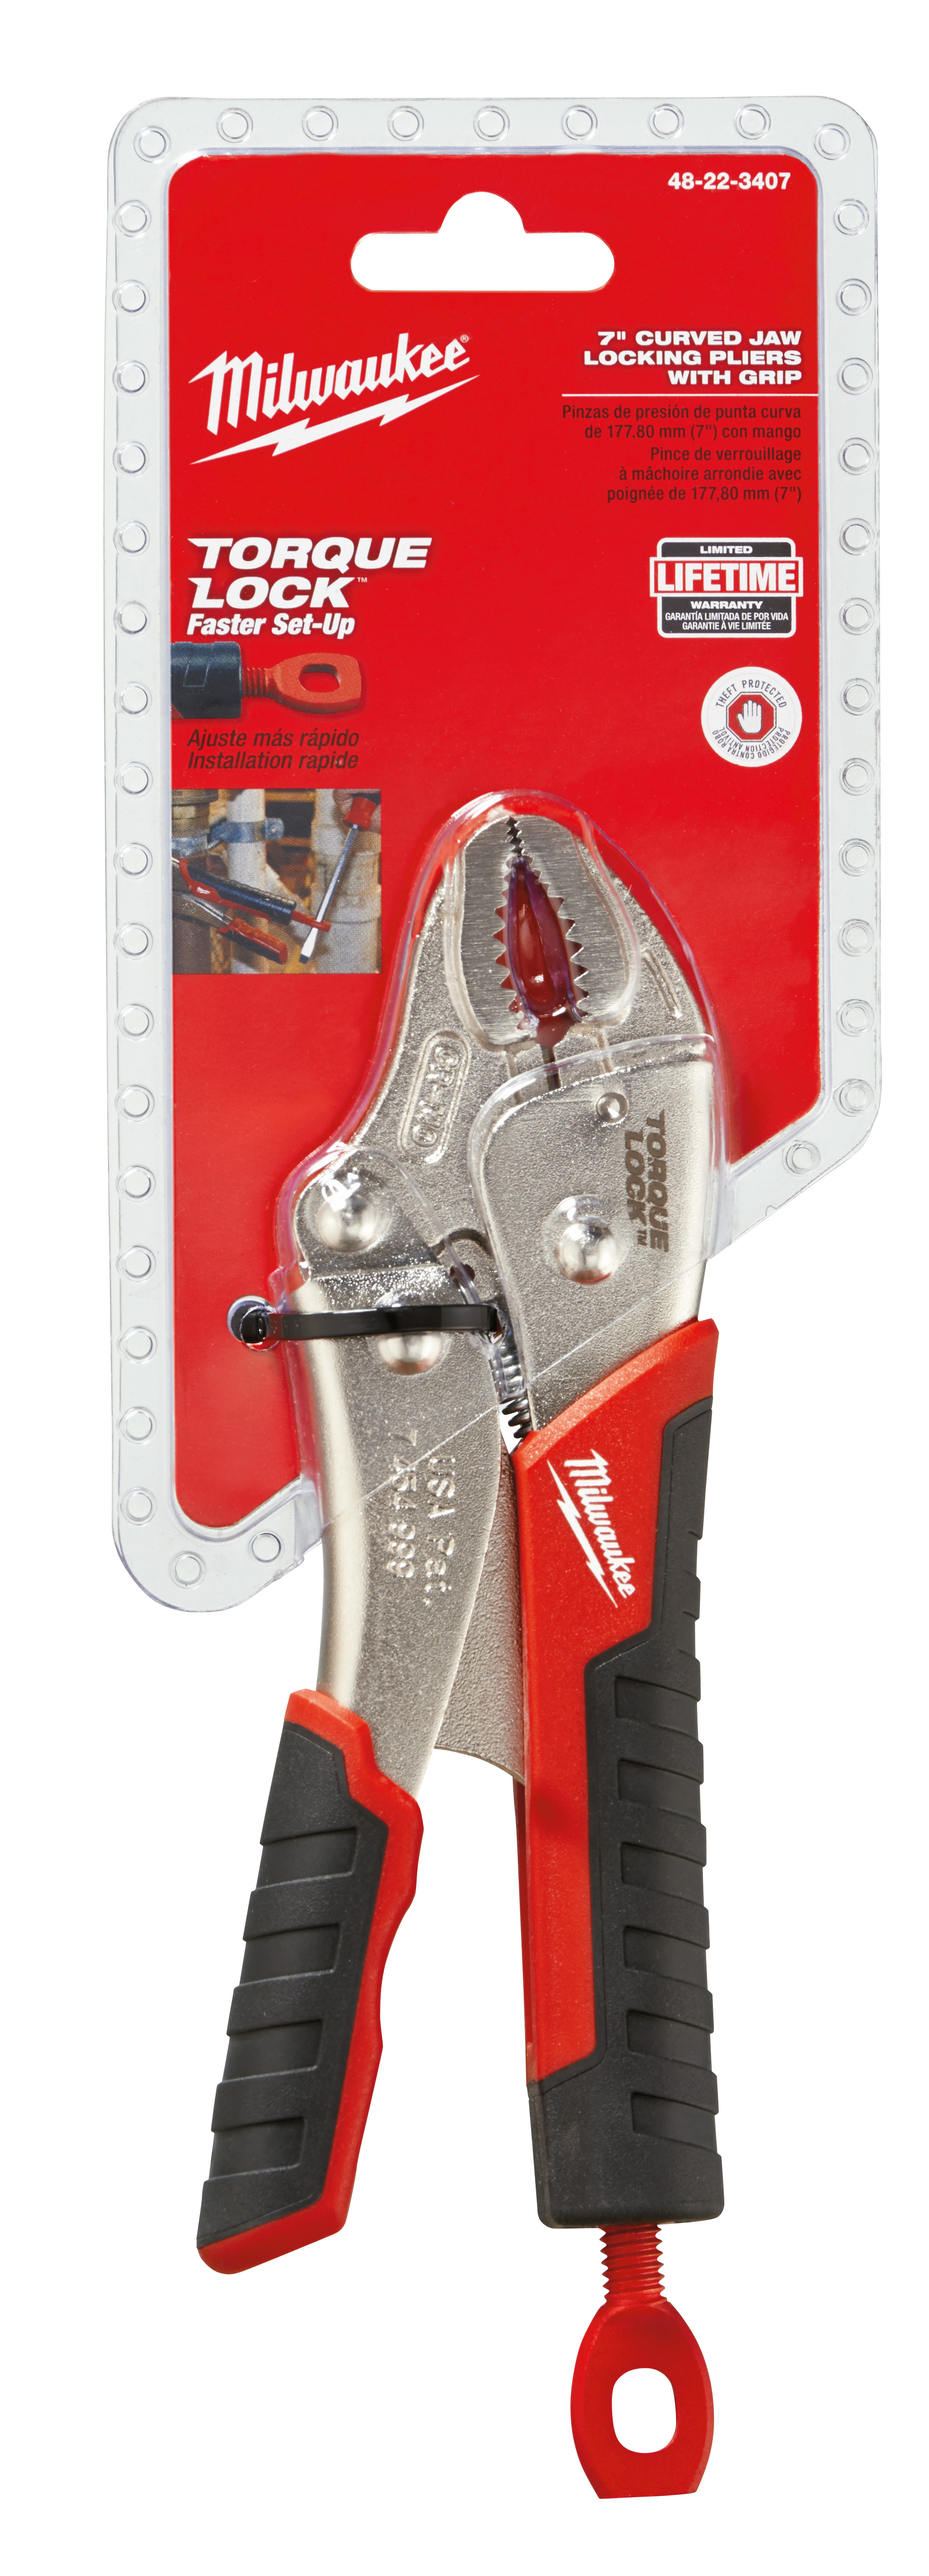 Milwaukee® 48-22-3407 TORQUE LOCK™ 1-Handed Lever Locking Plier, 1 in Nominal, 1-5/64 in L x 13/32 in W x 13/32 in THK Alloy Steel Curved Jaw, 7 in OAL